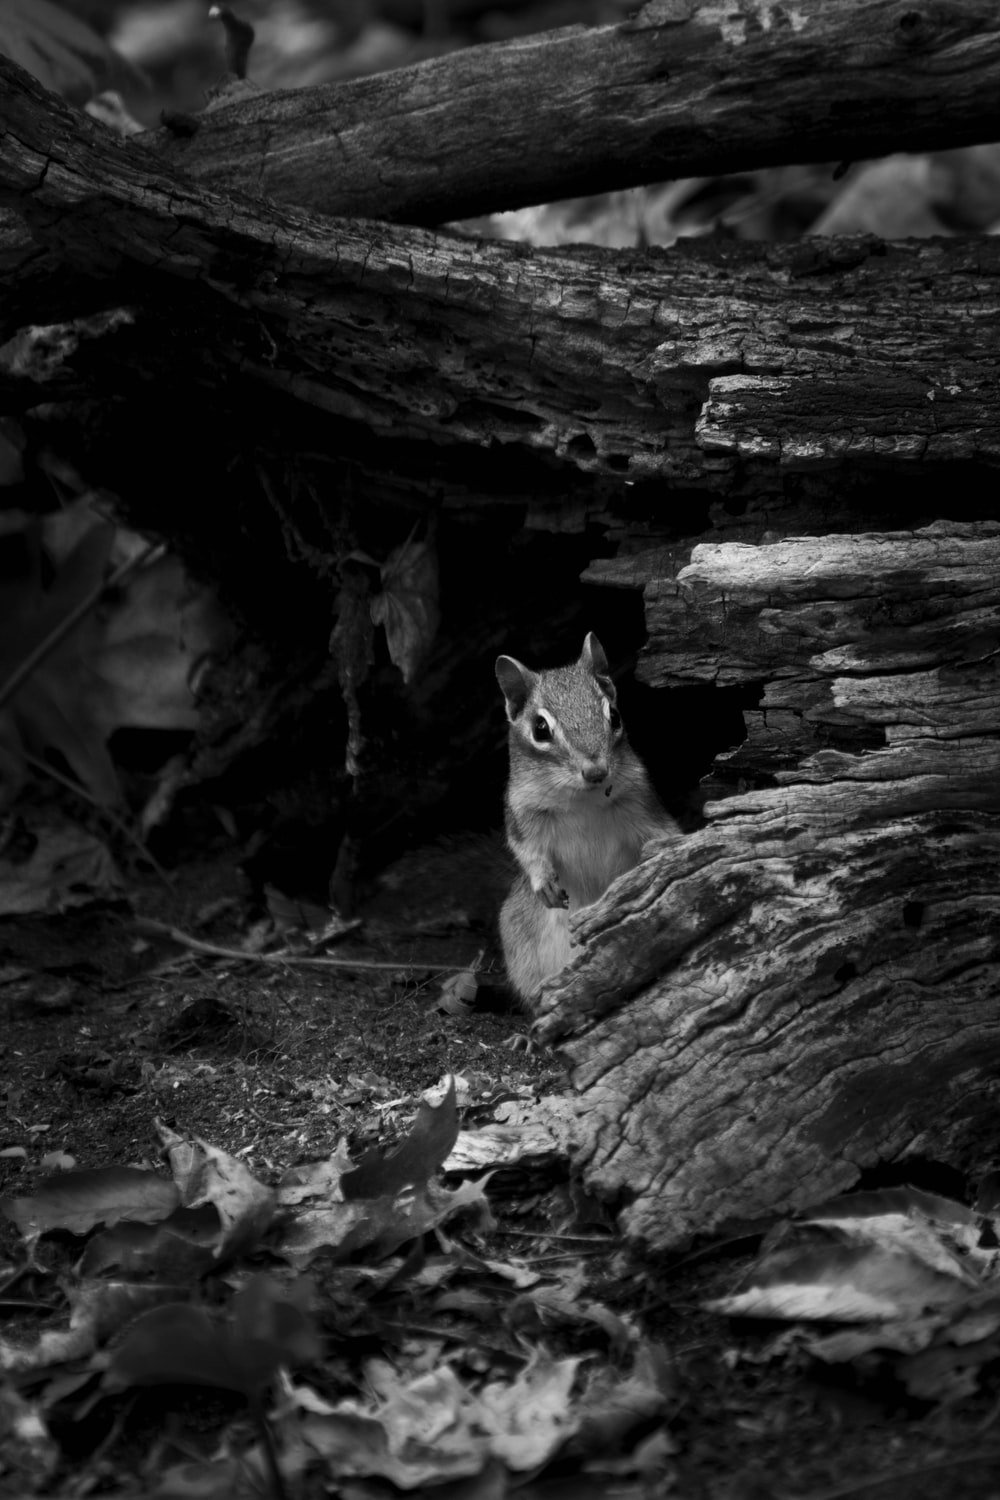 grayscale photo of cat on rock